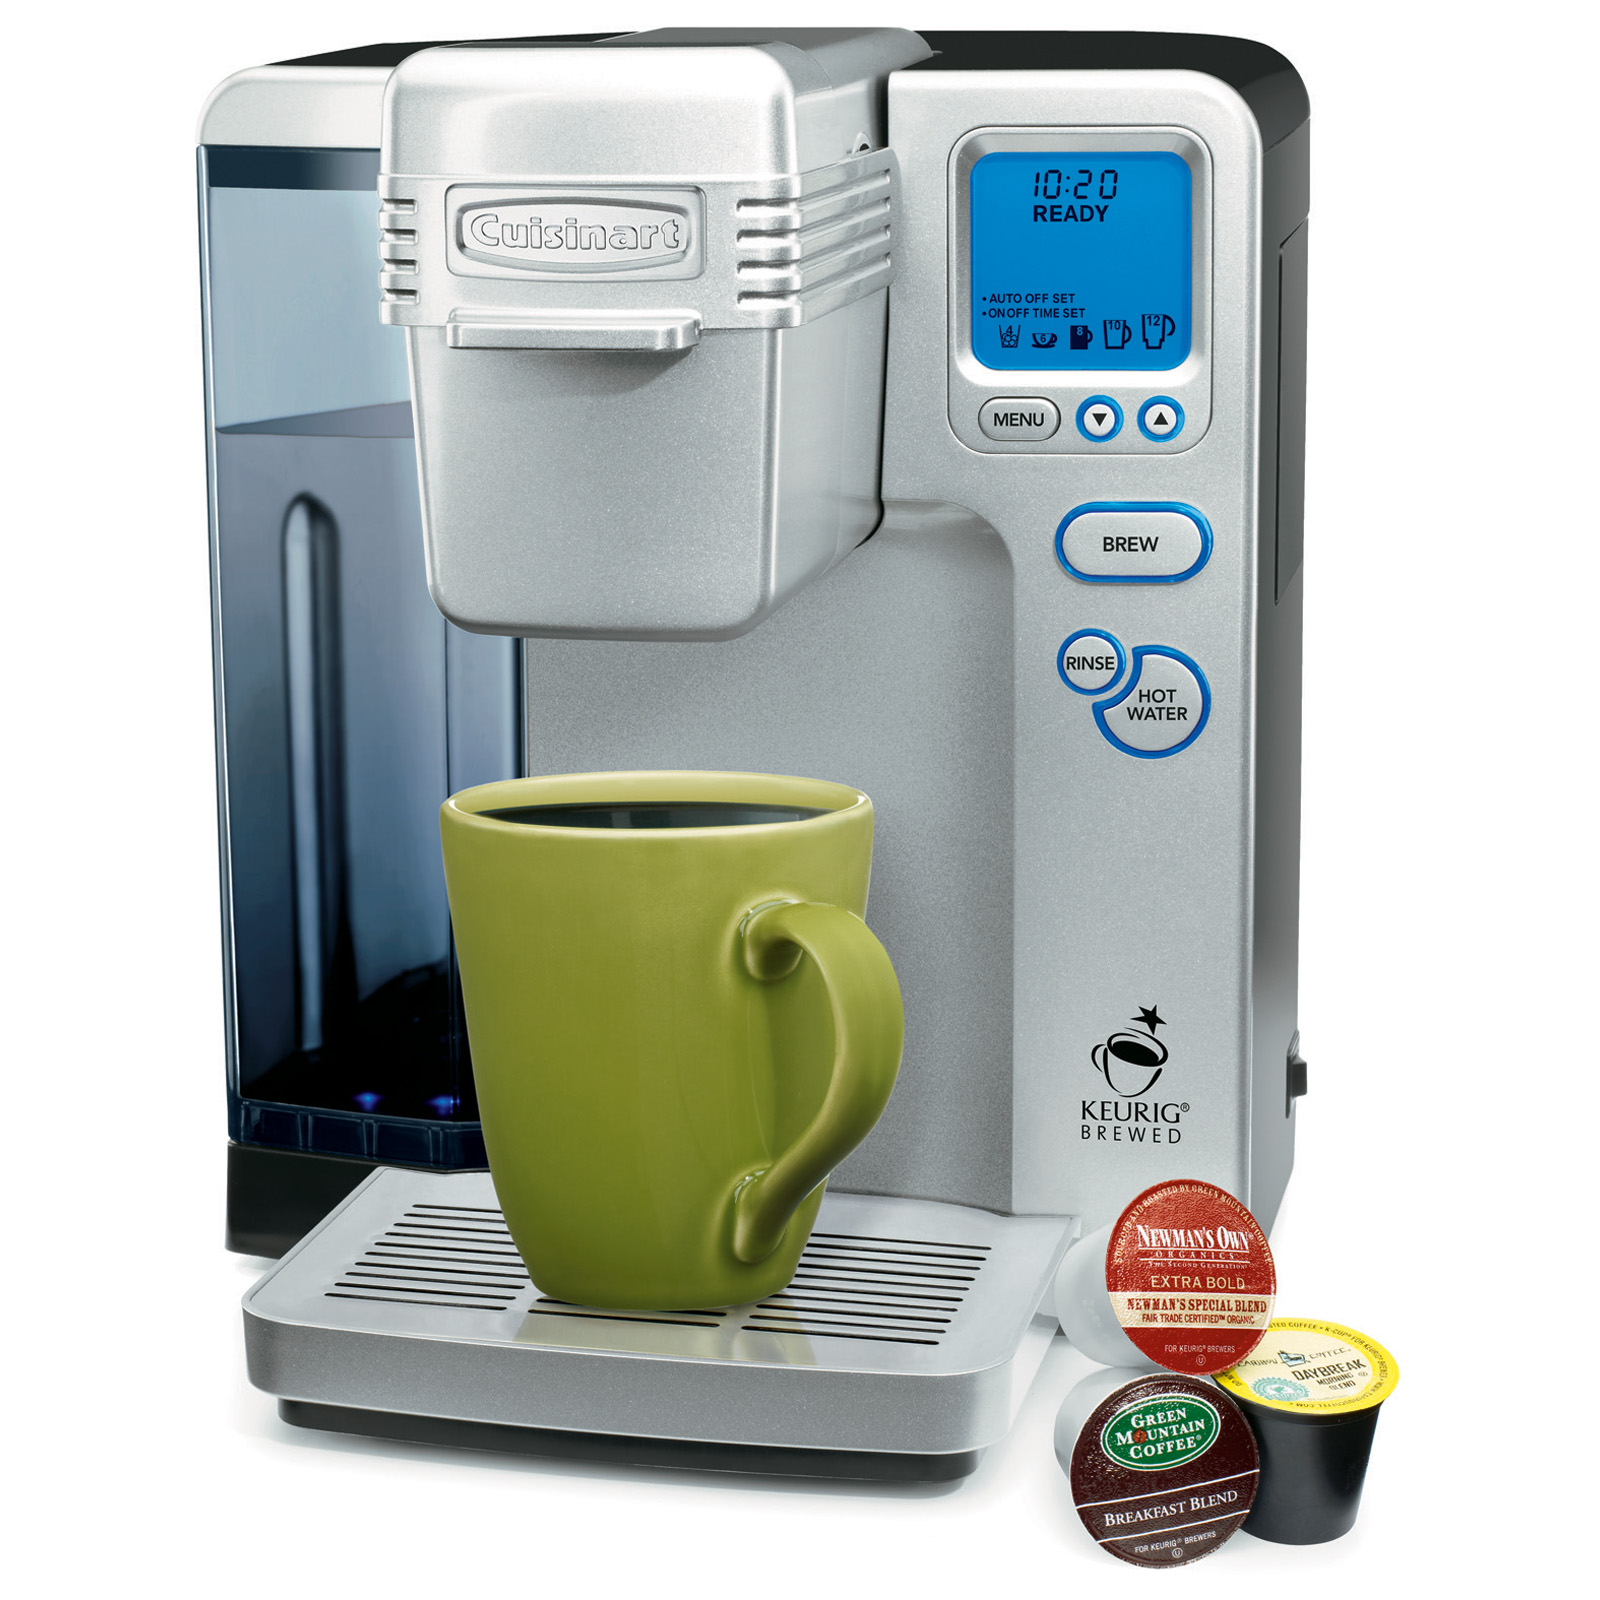 Single Serve Coffee Maker With Large Reservoir : Cuisinart Keurig Brewed SS-700 Single-Serve Brewing System with Hot Water System - Coffee Makers ...